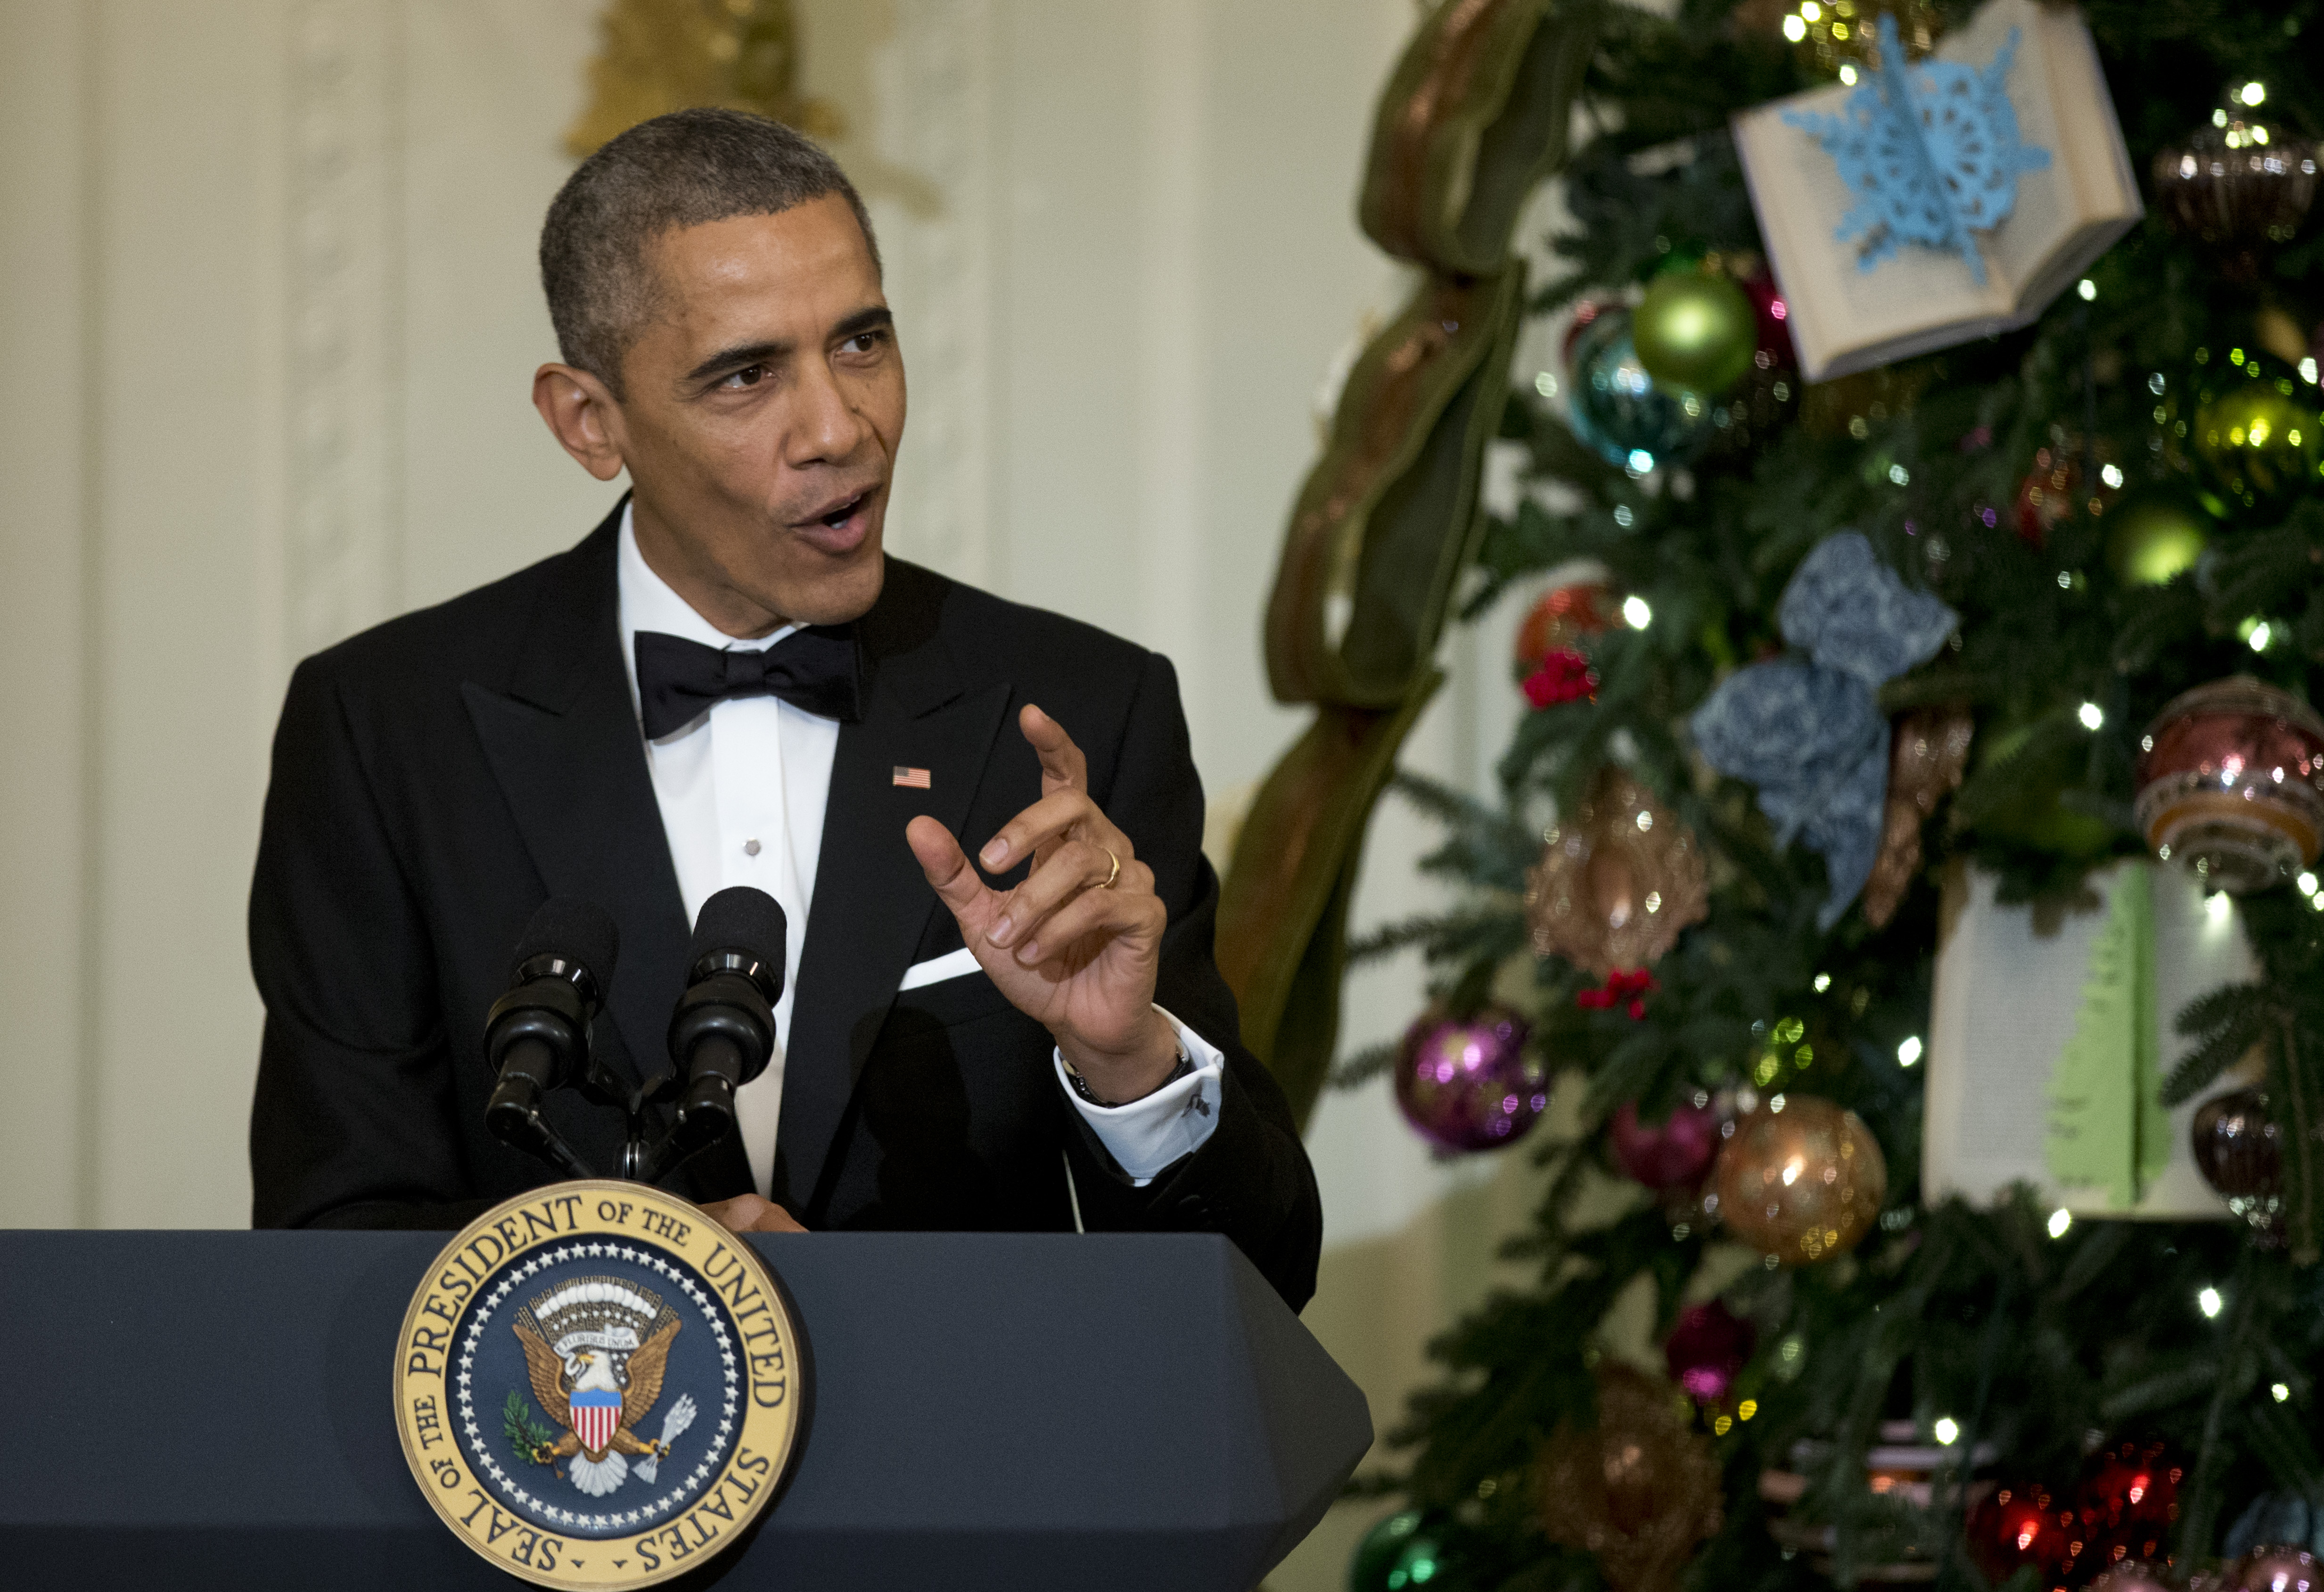 Obama takes swipe at TV networks over racial issues - Washington Times